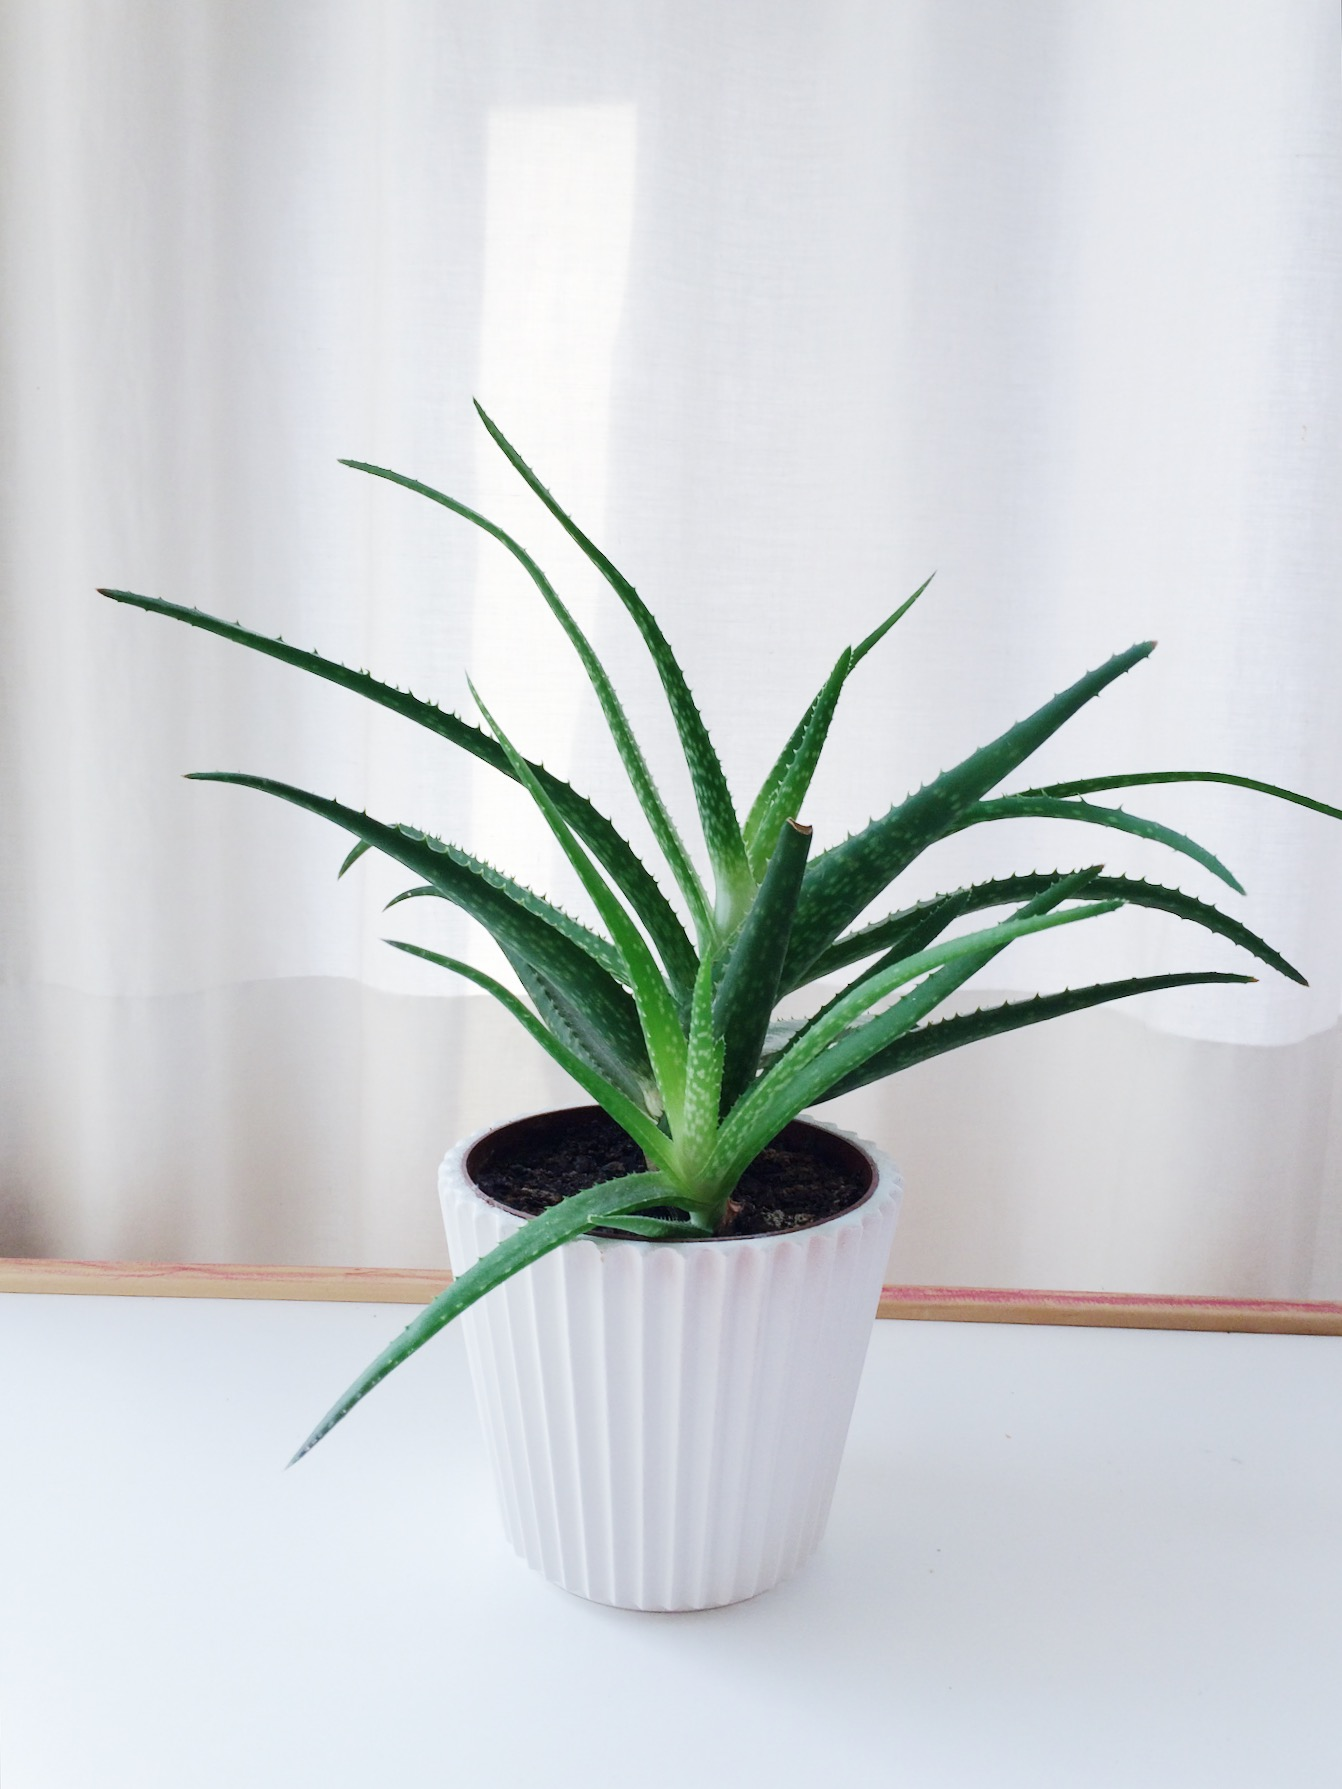 Aloe vera plant in white ceramic pot in front of a white curtain